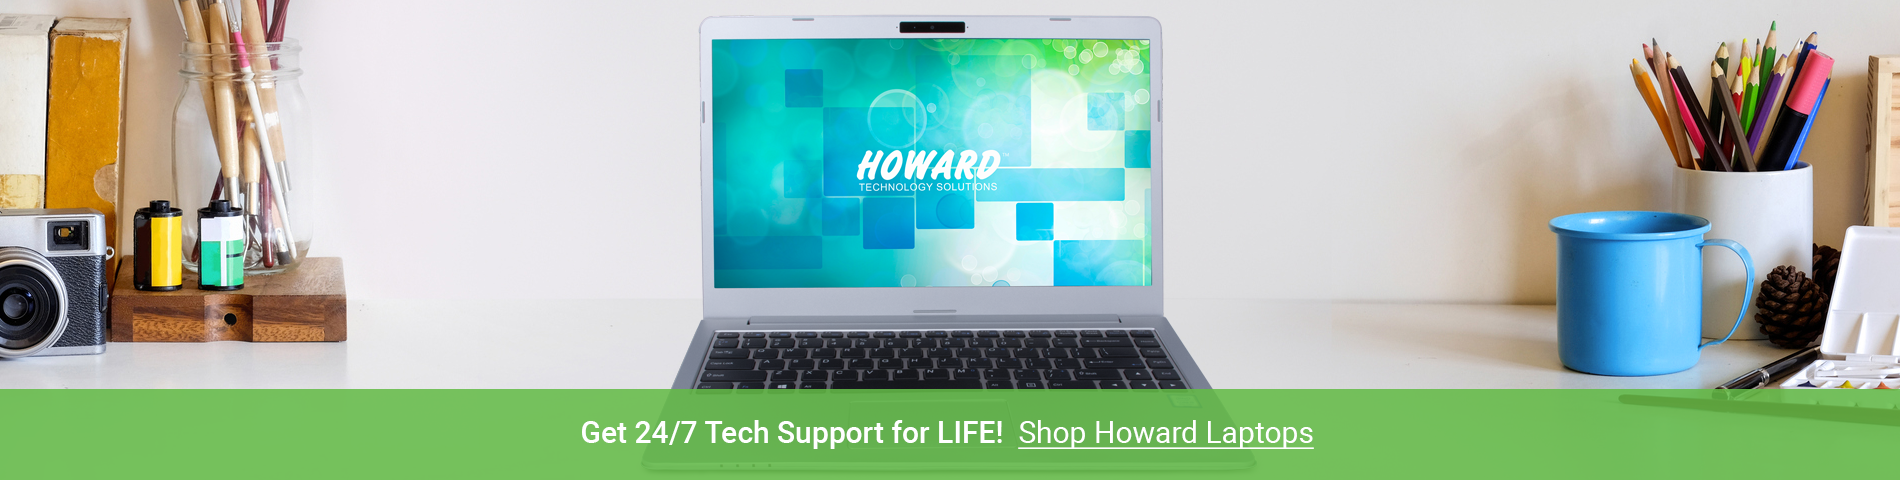 Howard Laptops